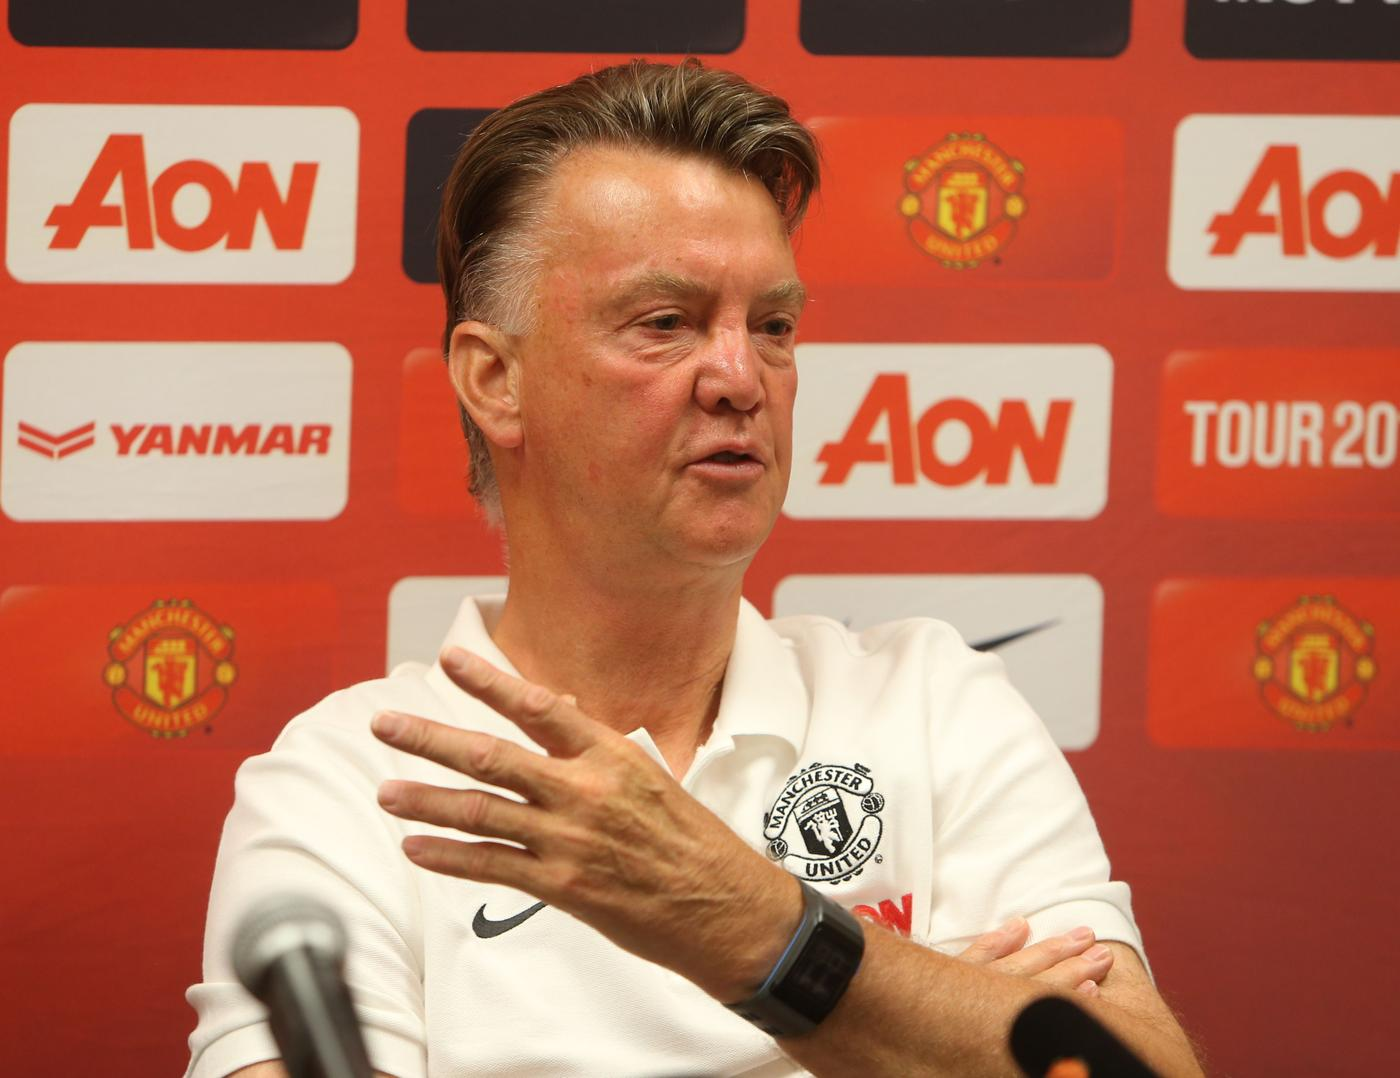 Can Manchester United's Louis van Gaal and Liverpool's Brendan Rodgers handle the pressure?